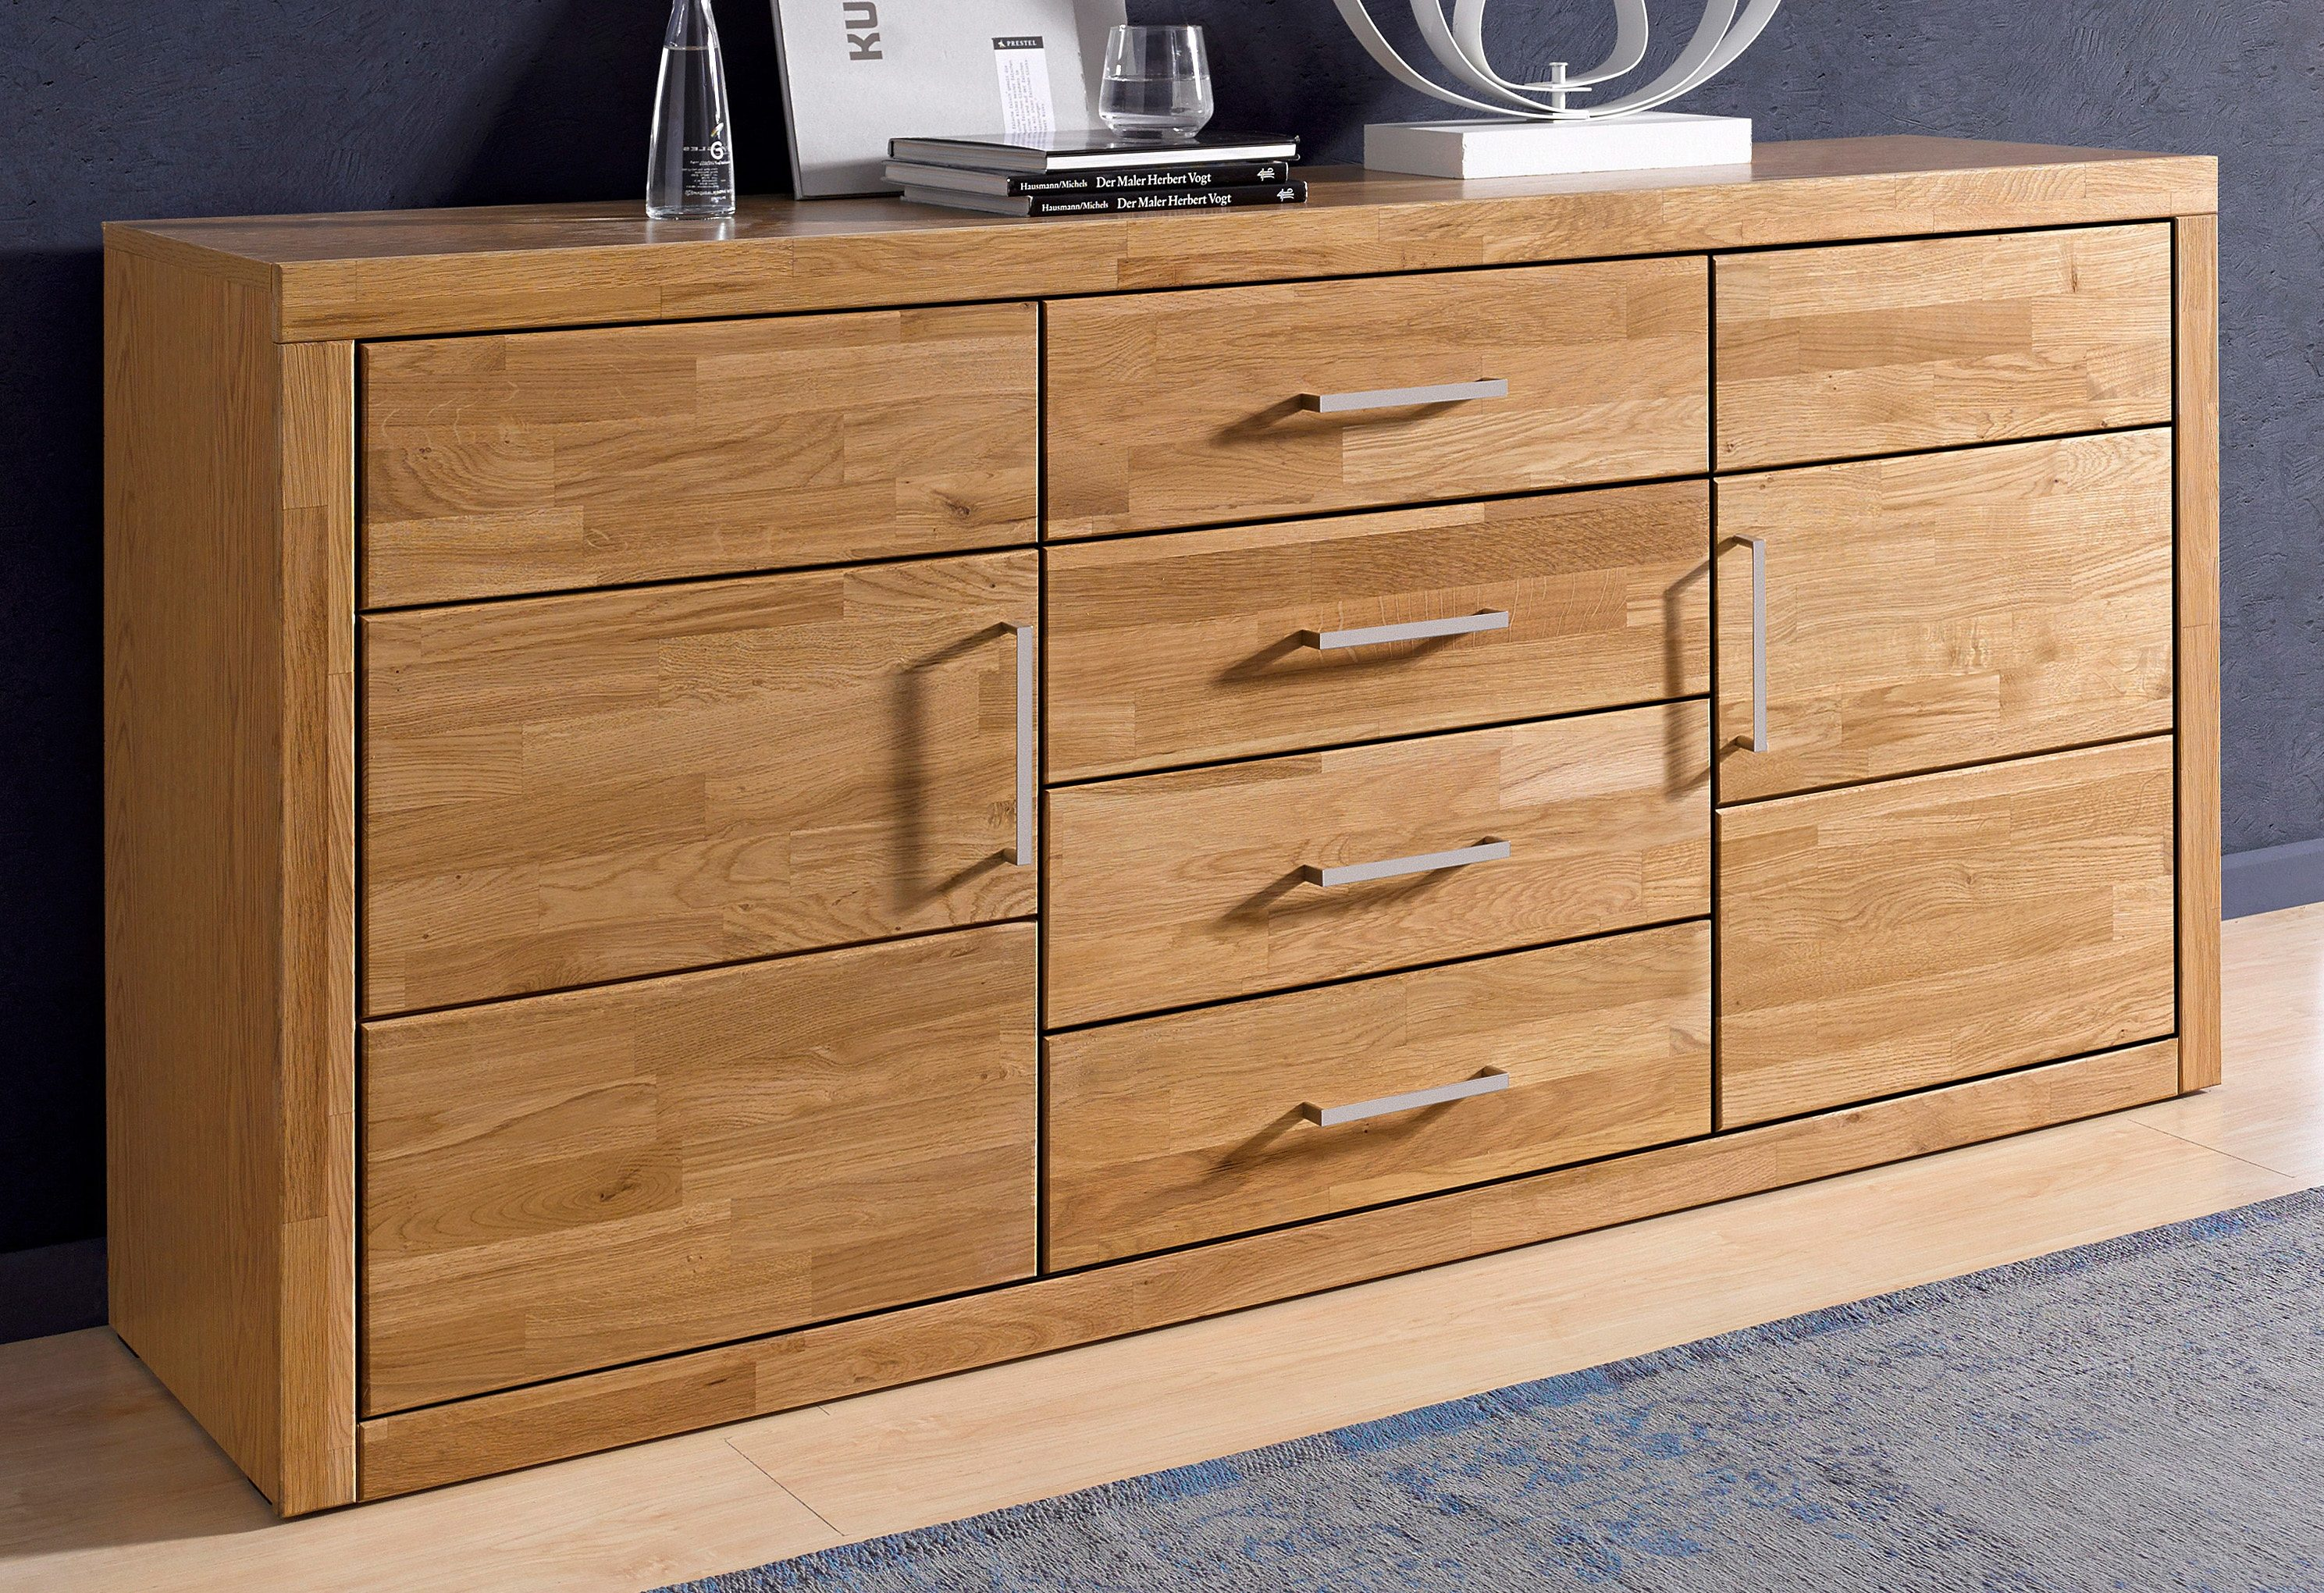 Places of Style Sideboard Breite 170 cm